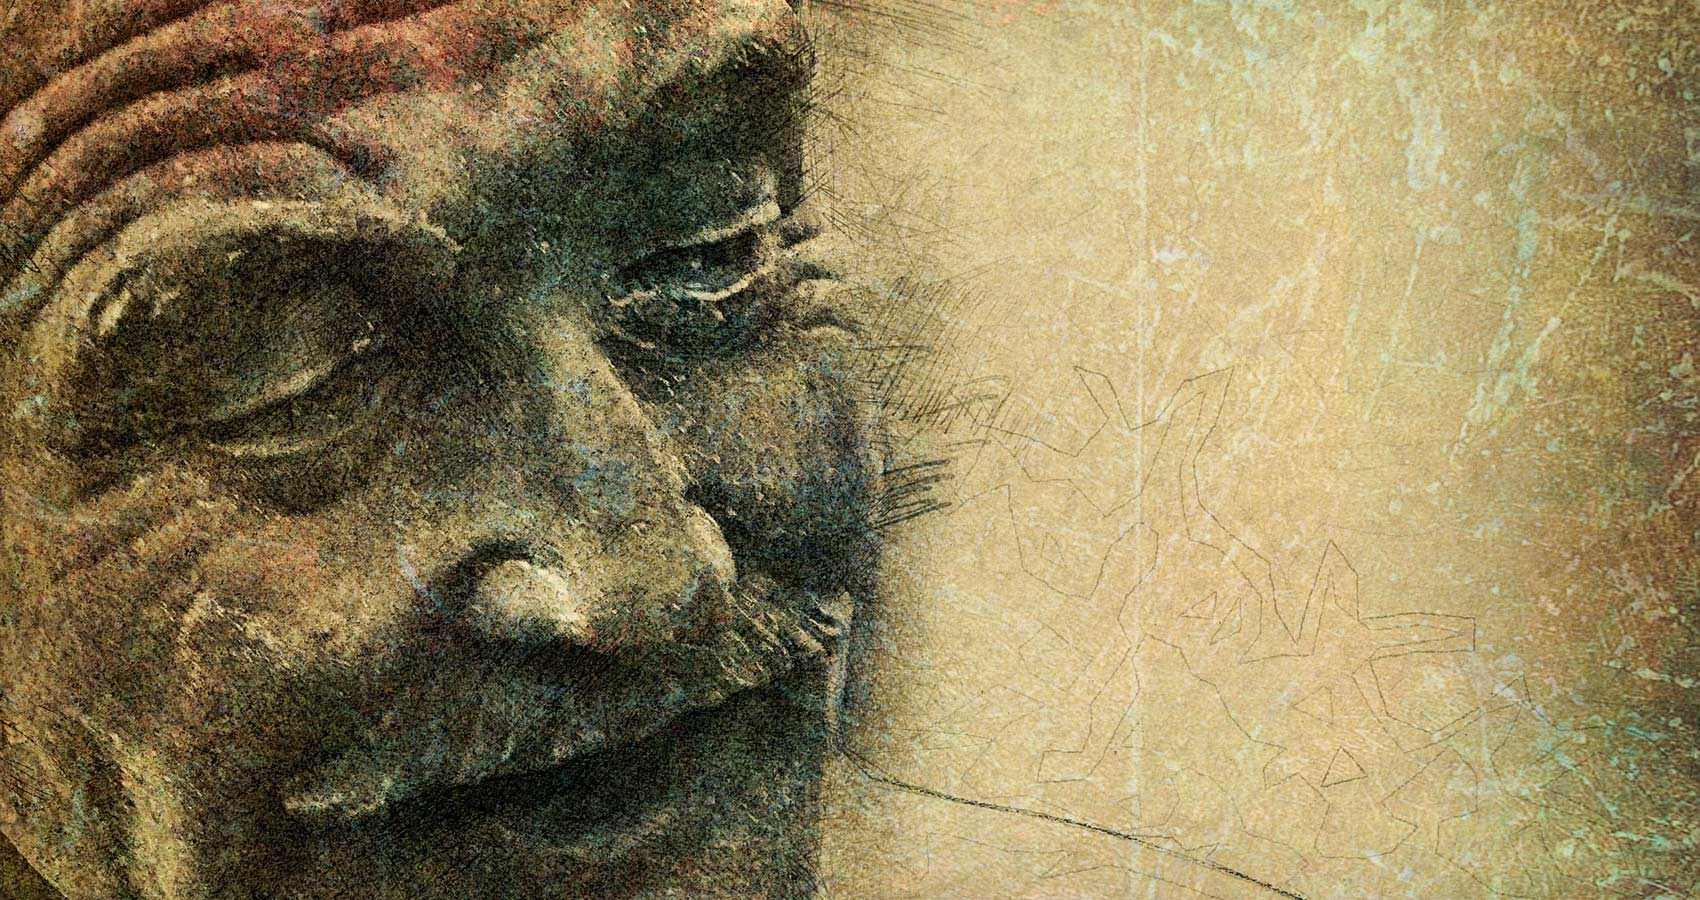 One man's Face, poetry by Edward McCloud at Spillwords.com